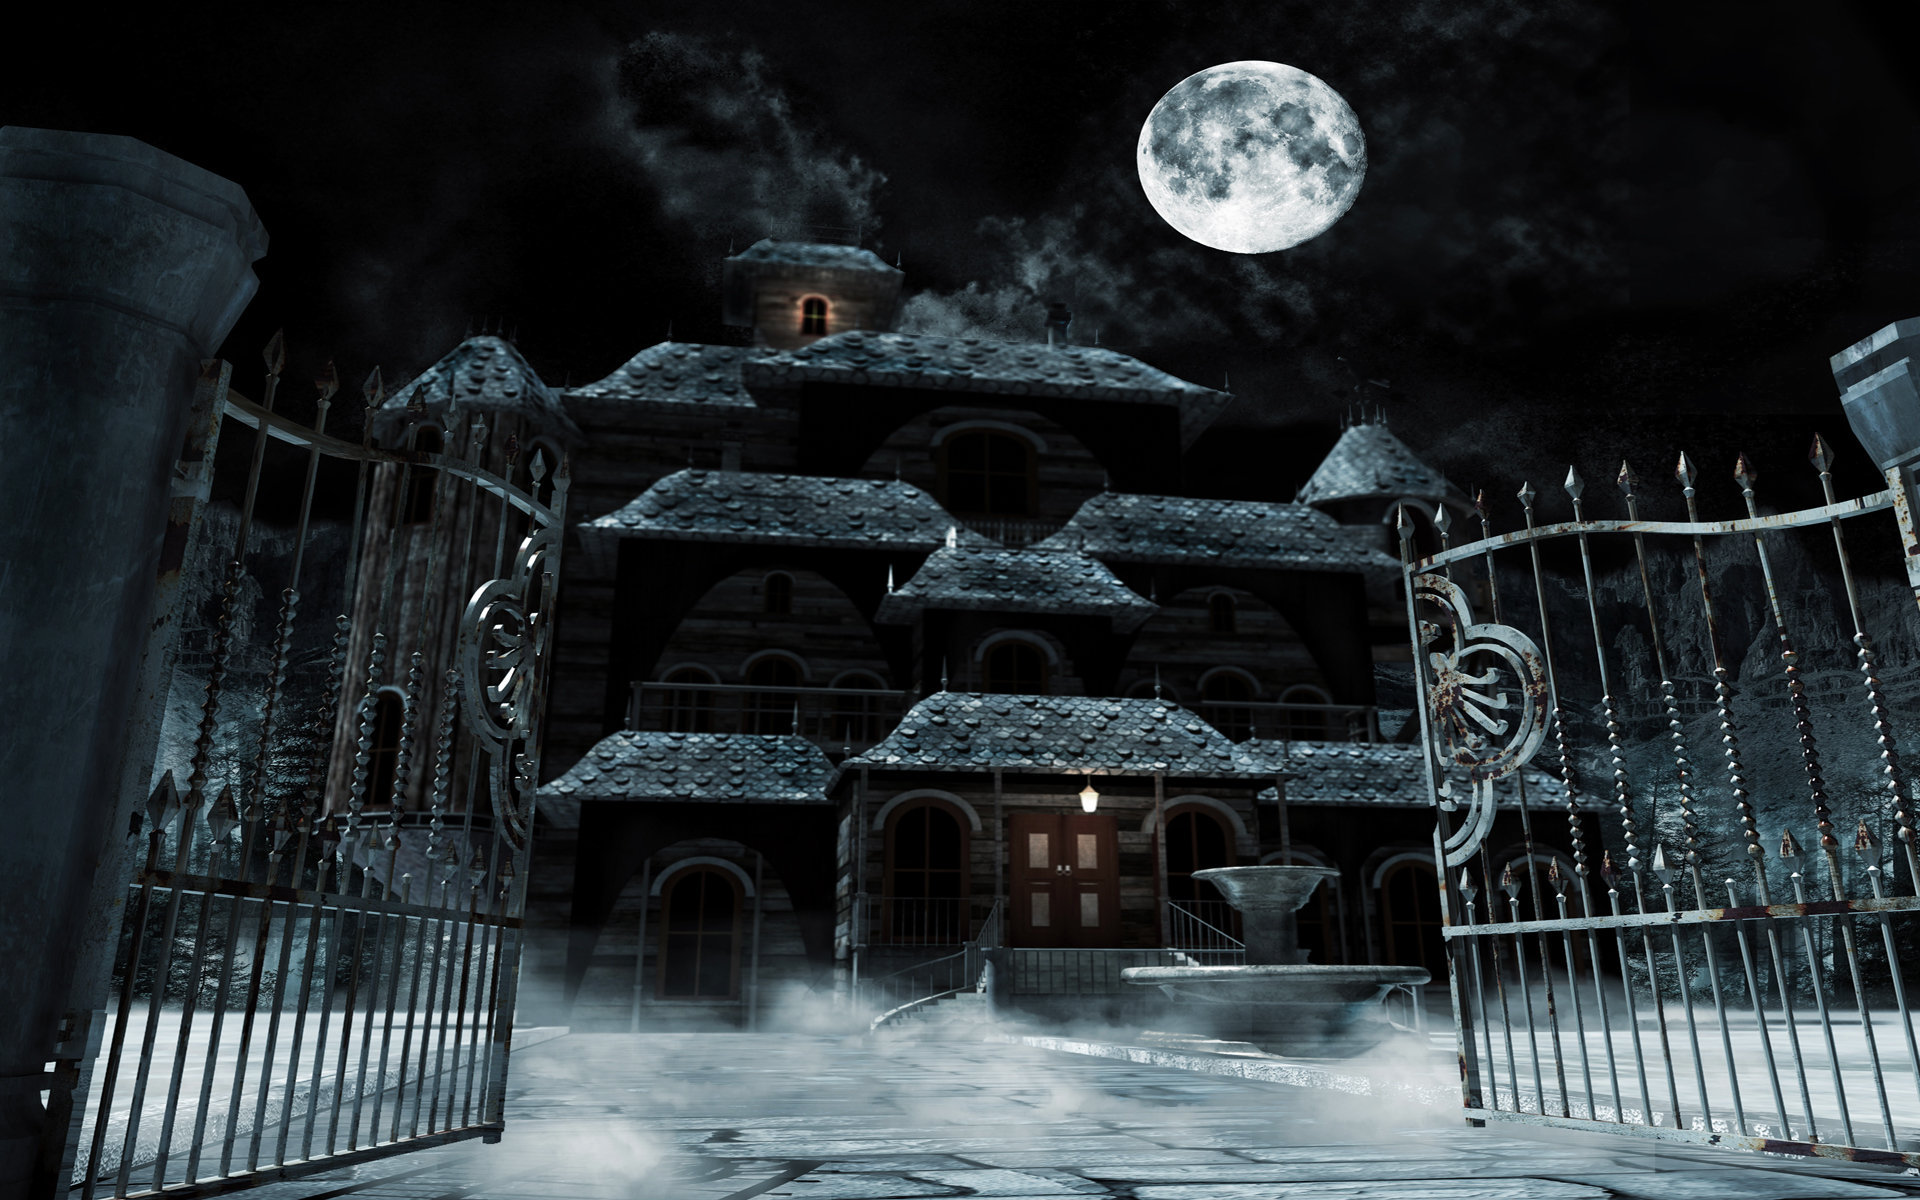 The Haunted House Wallpaper 19201200 21588 HD Wallpaper Res 1920x1200